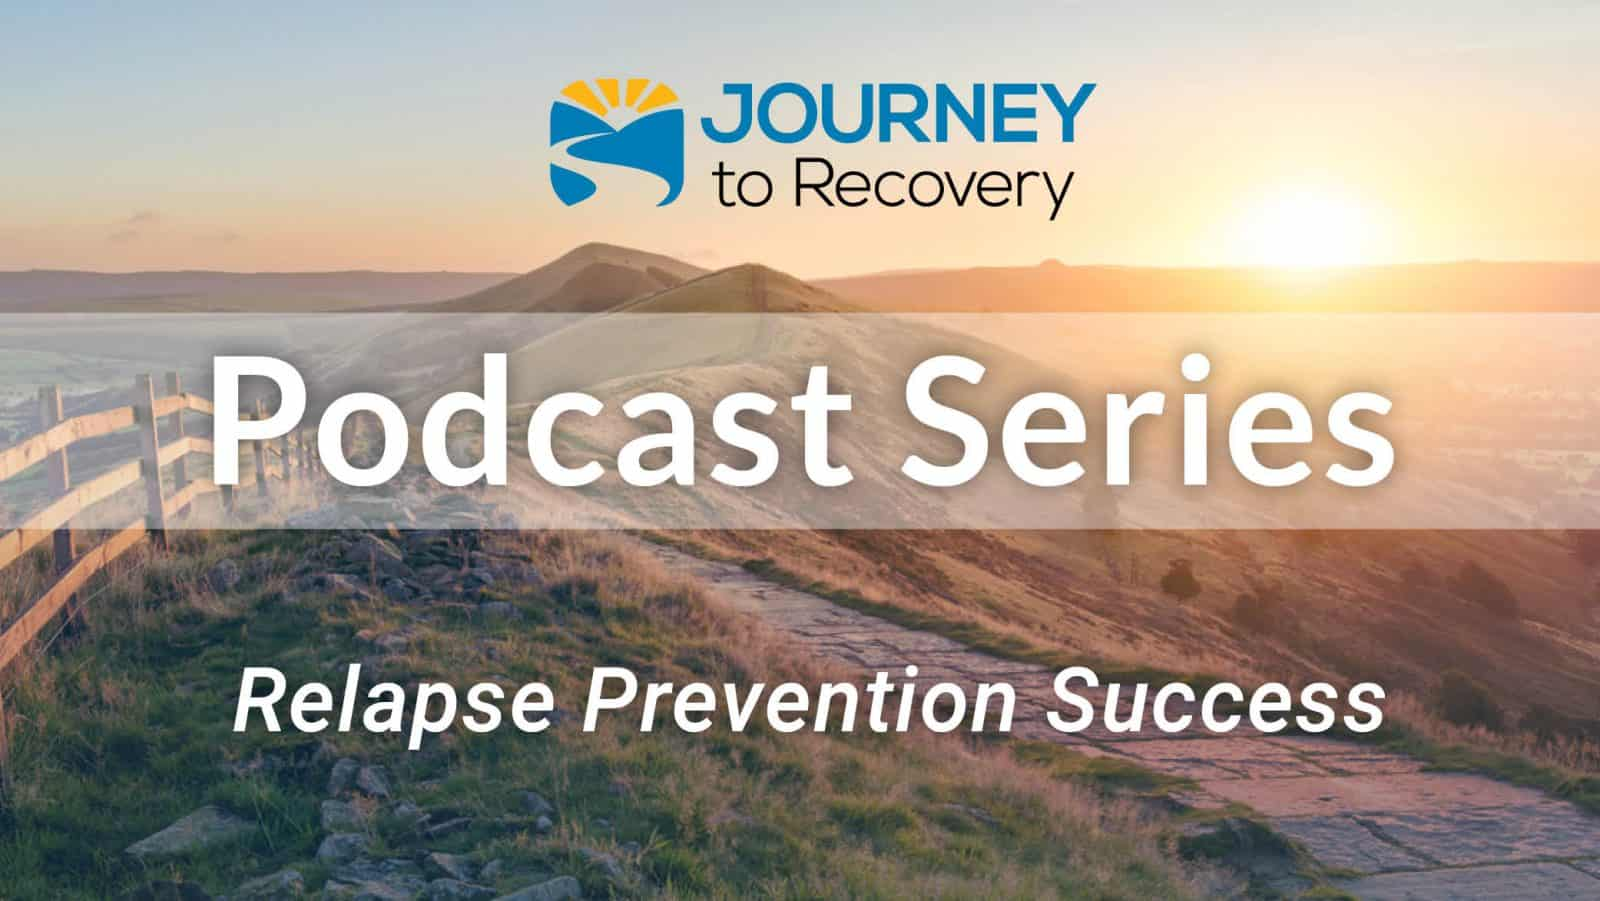 Relapse Prevention Success